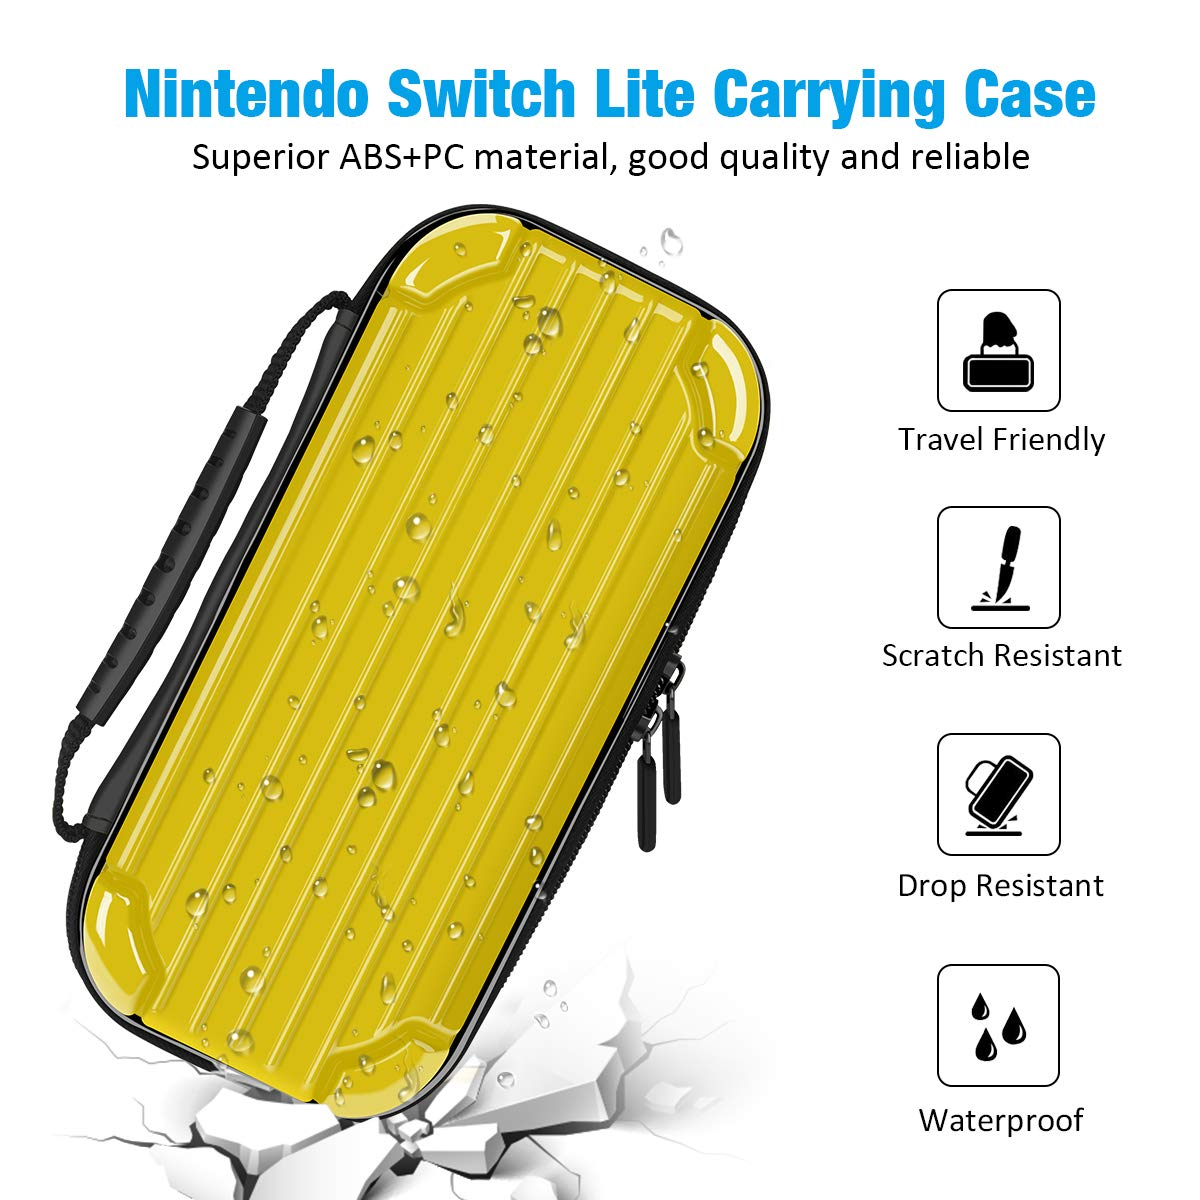 Carrying Case for Nintendo Switch Lite, Y Team Switch Lite Case with 10 Game Cartridge Storage Holders and 1 Tempered Screen Protector for Nintendo Switch Lite Console and Accessories (Yellow)